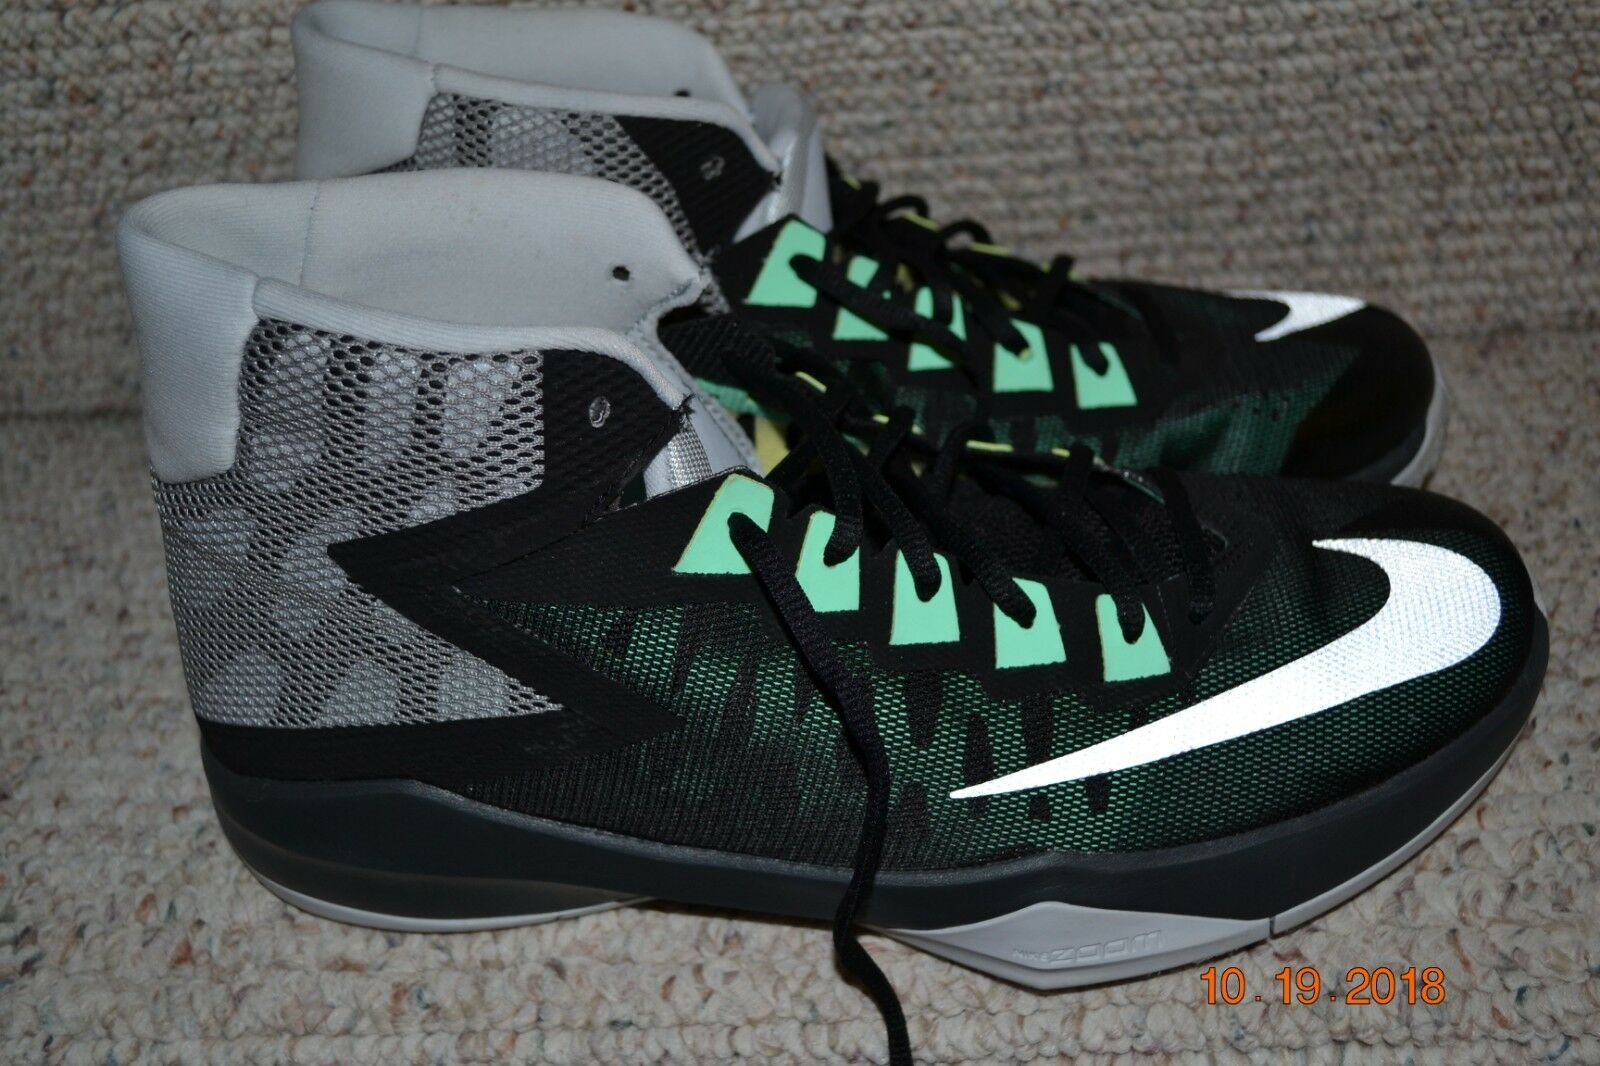 NEW  NIKE  Mens Tennis shoes,Size 11.5, Never used Excellent condition